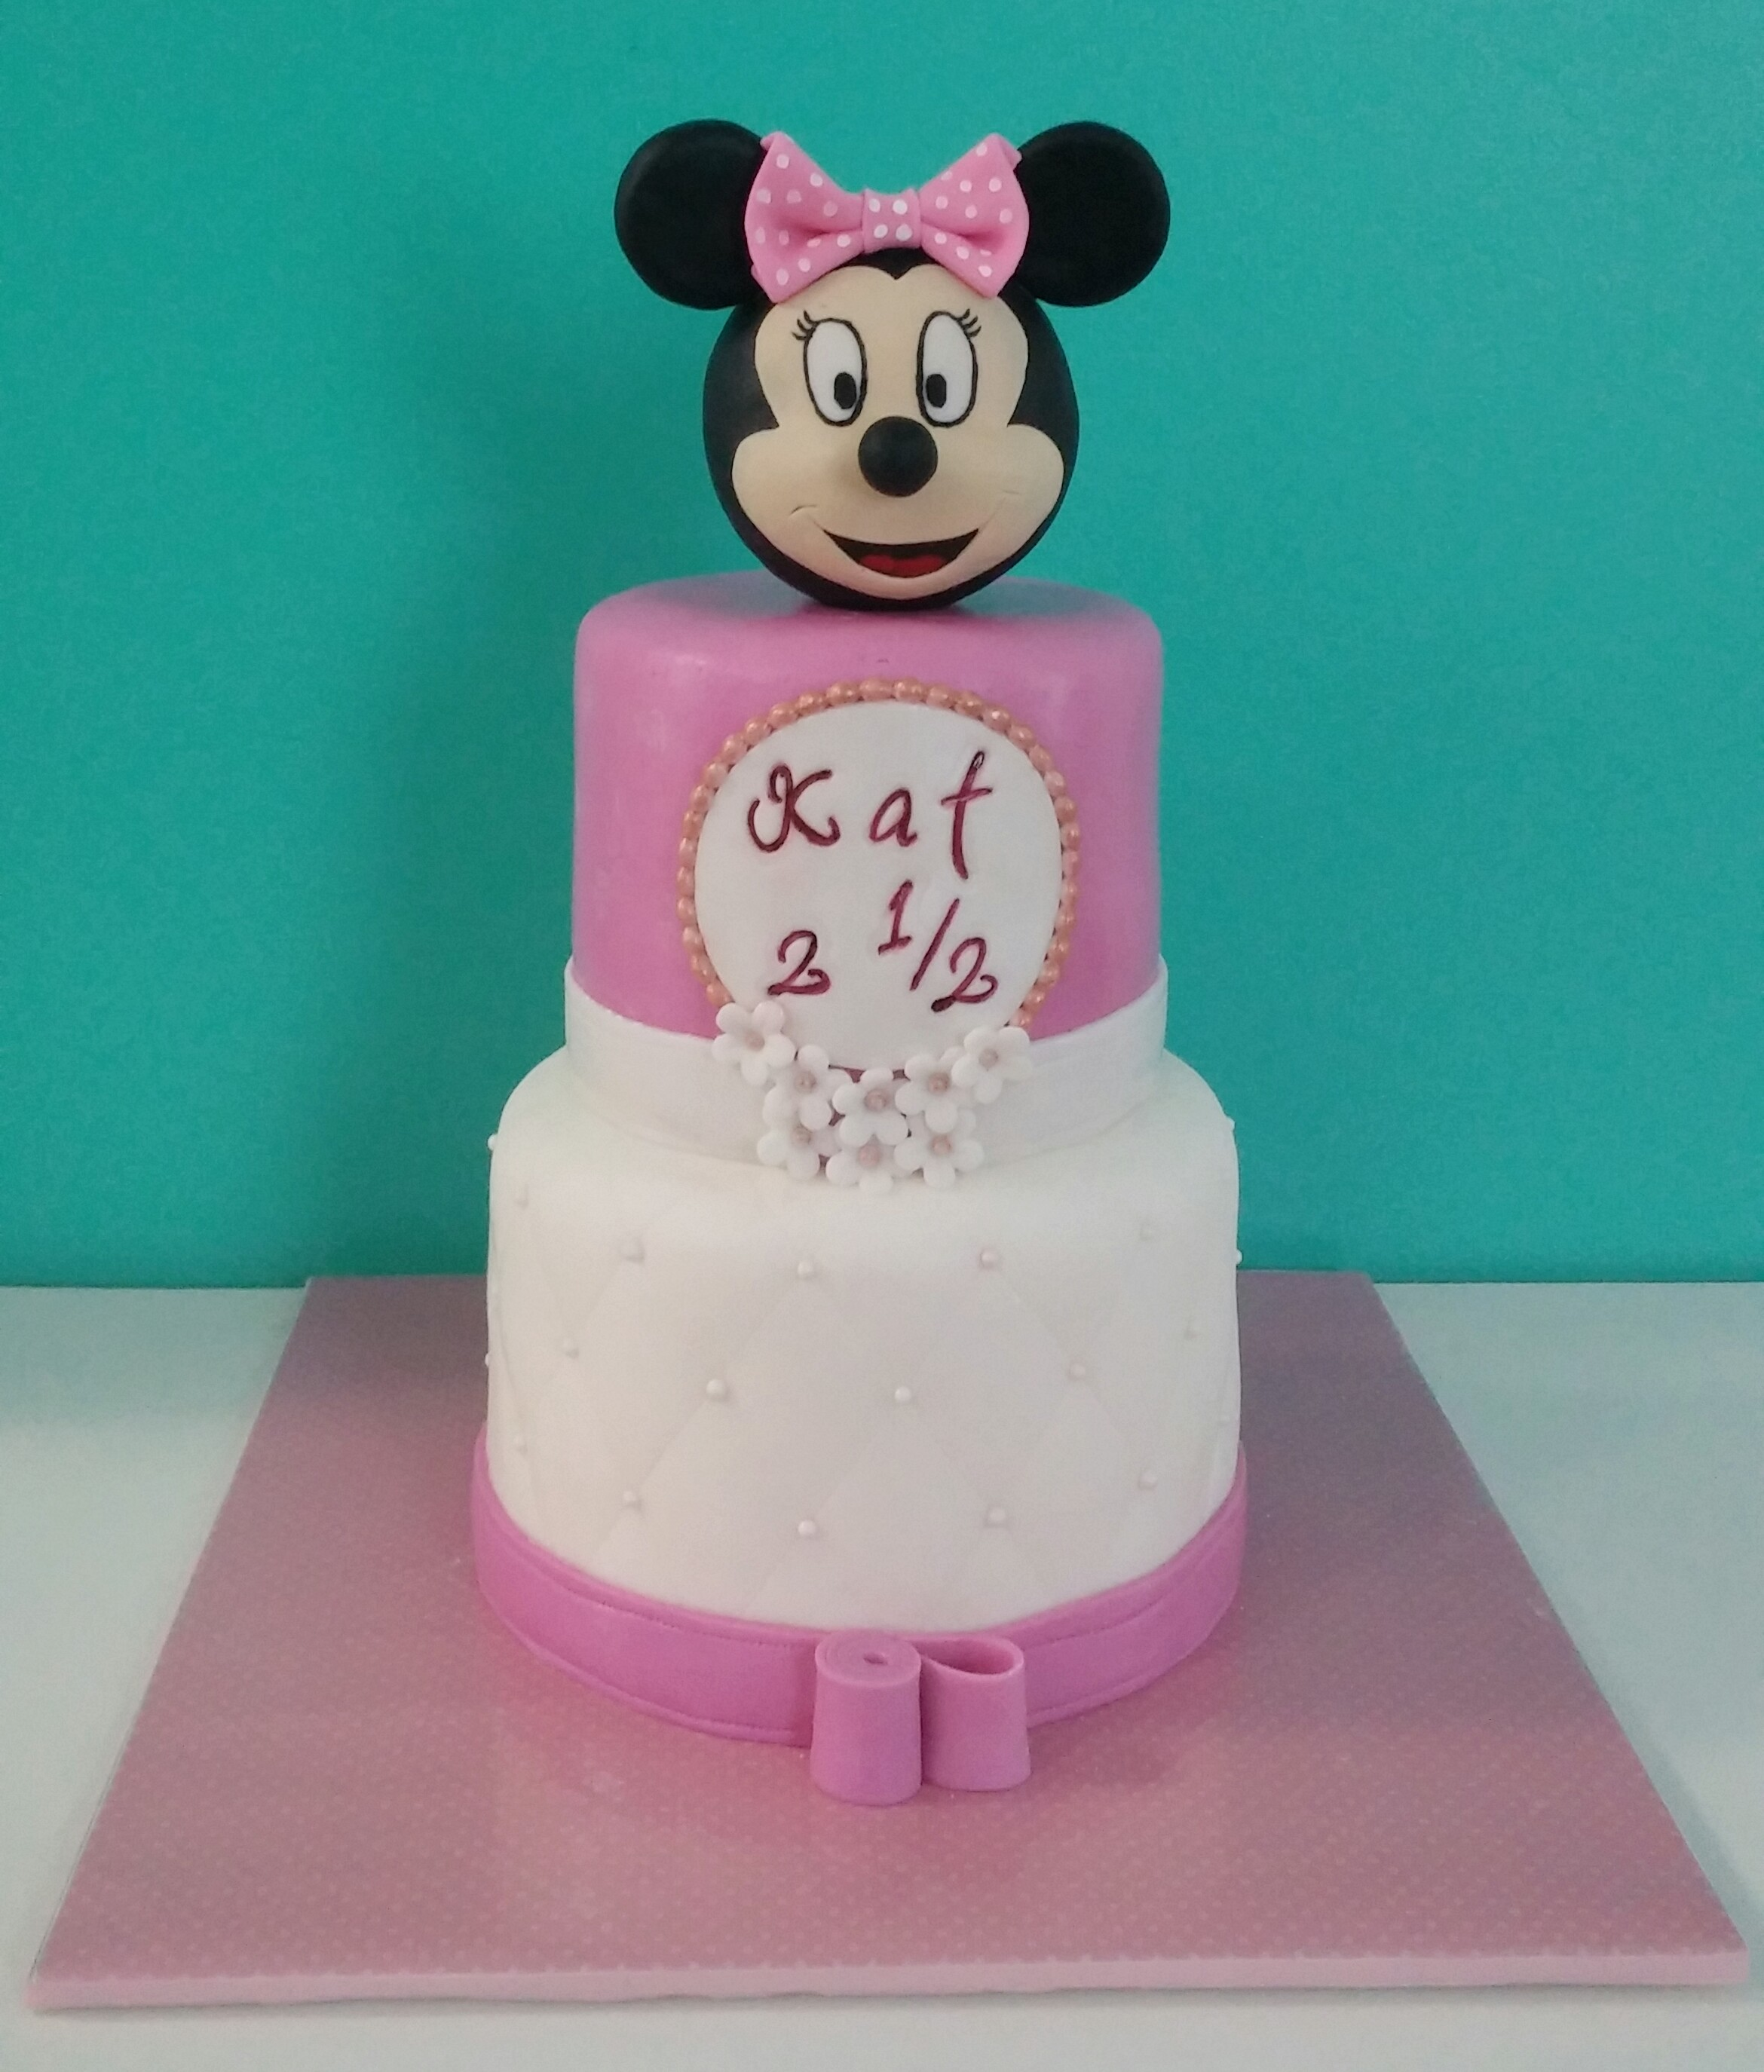 Minnie Mouse Birthday Cake And Cakepops Cherry With A Cake On Top